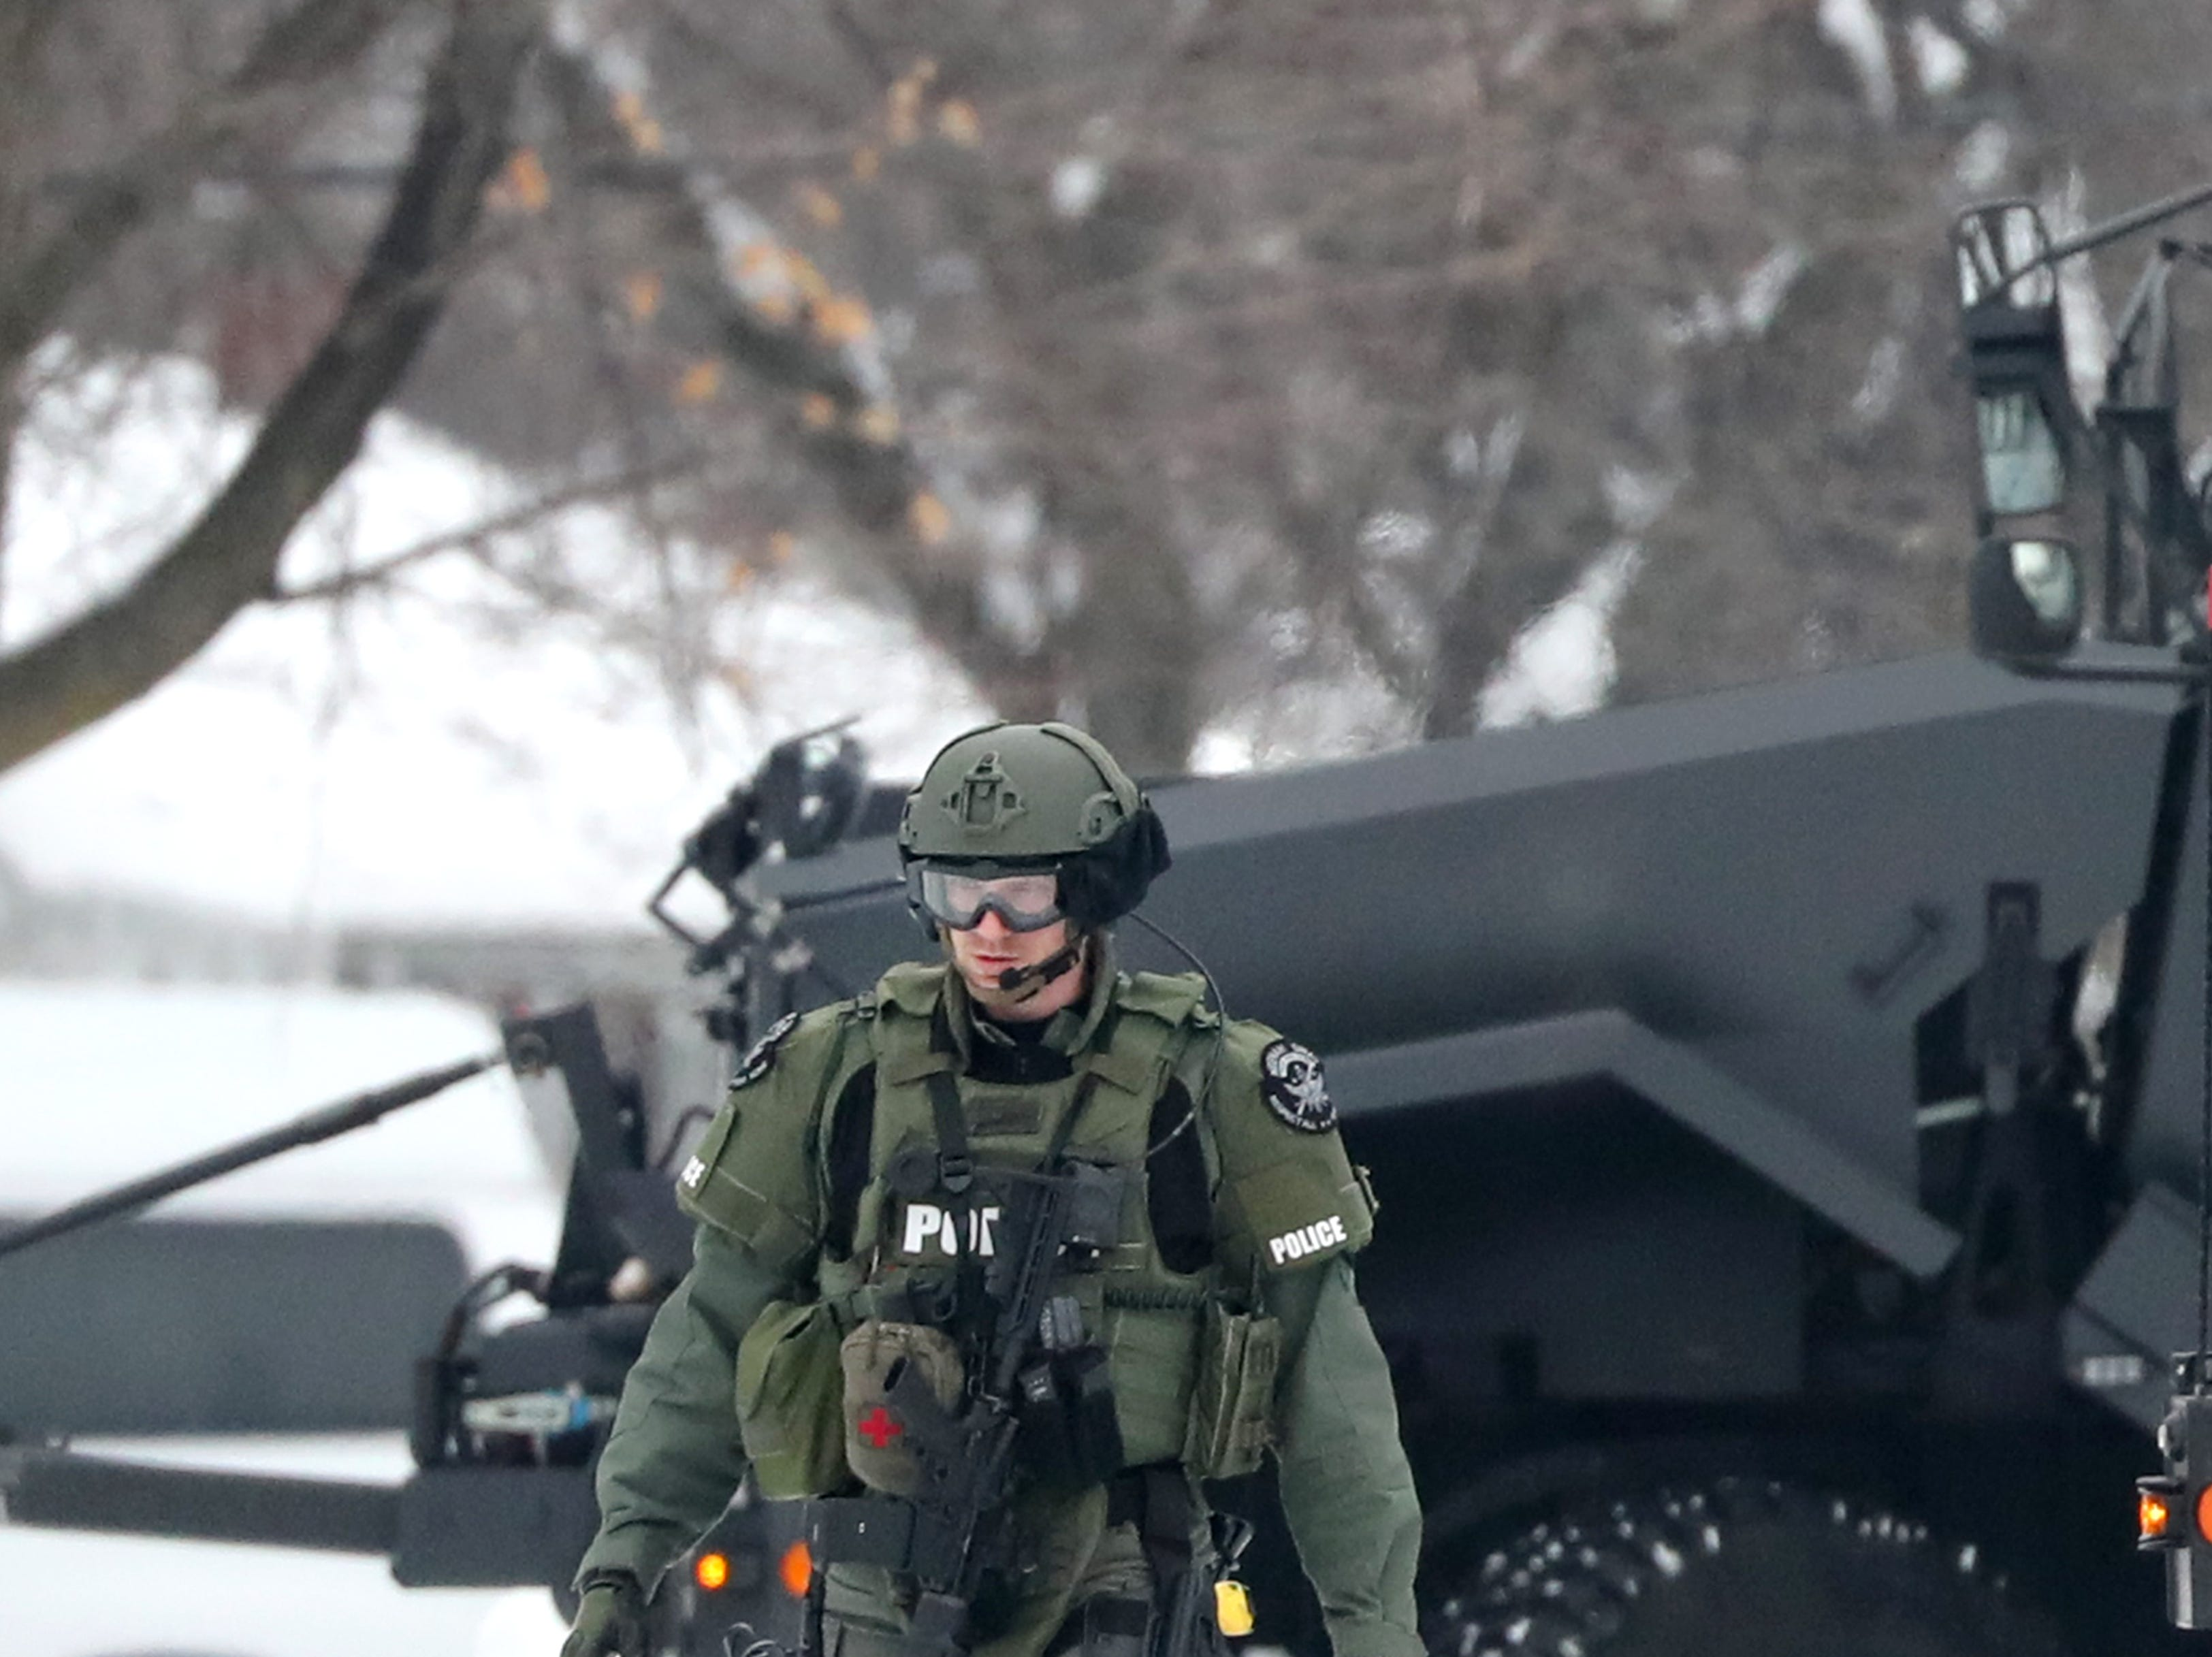 The Law enforcement presence after an armed man who barricaded himself inside a home on the 400 block of Quarry Lane was taken into custody Thursday, Feb. 14, 2019, in Neenah, Wis.Danny Damiani/USA TODAY NETWORK-Wisconsin